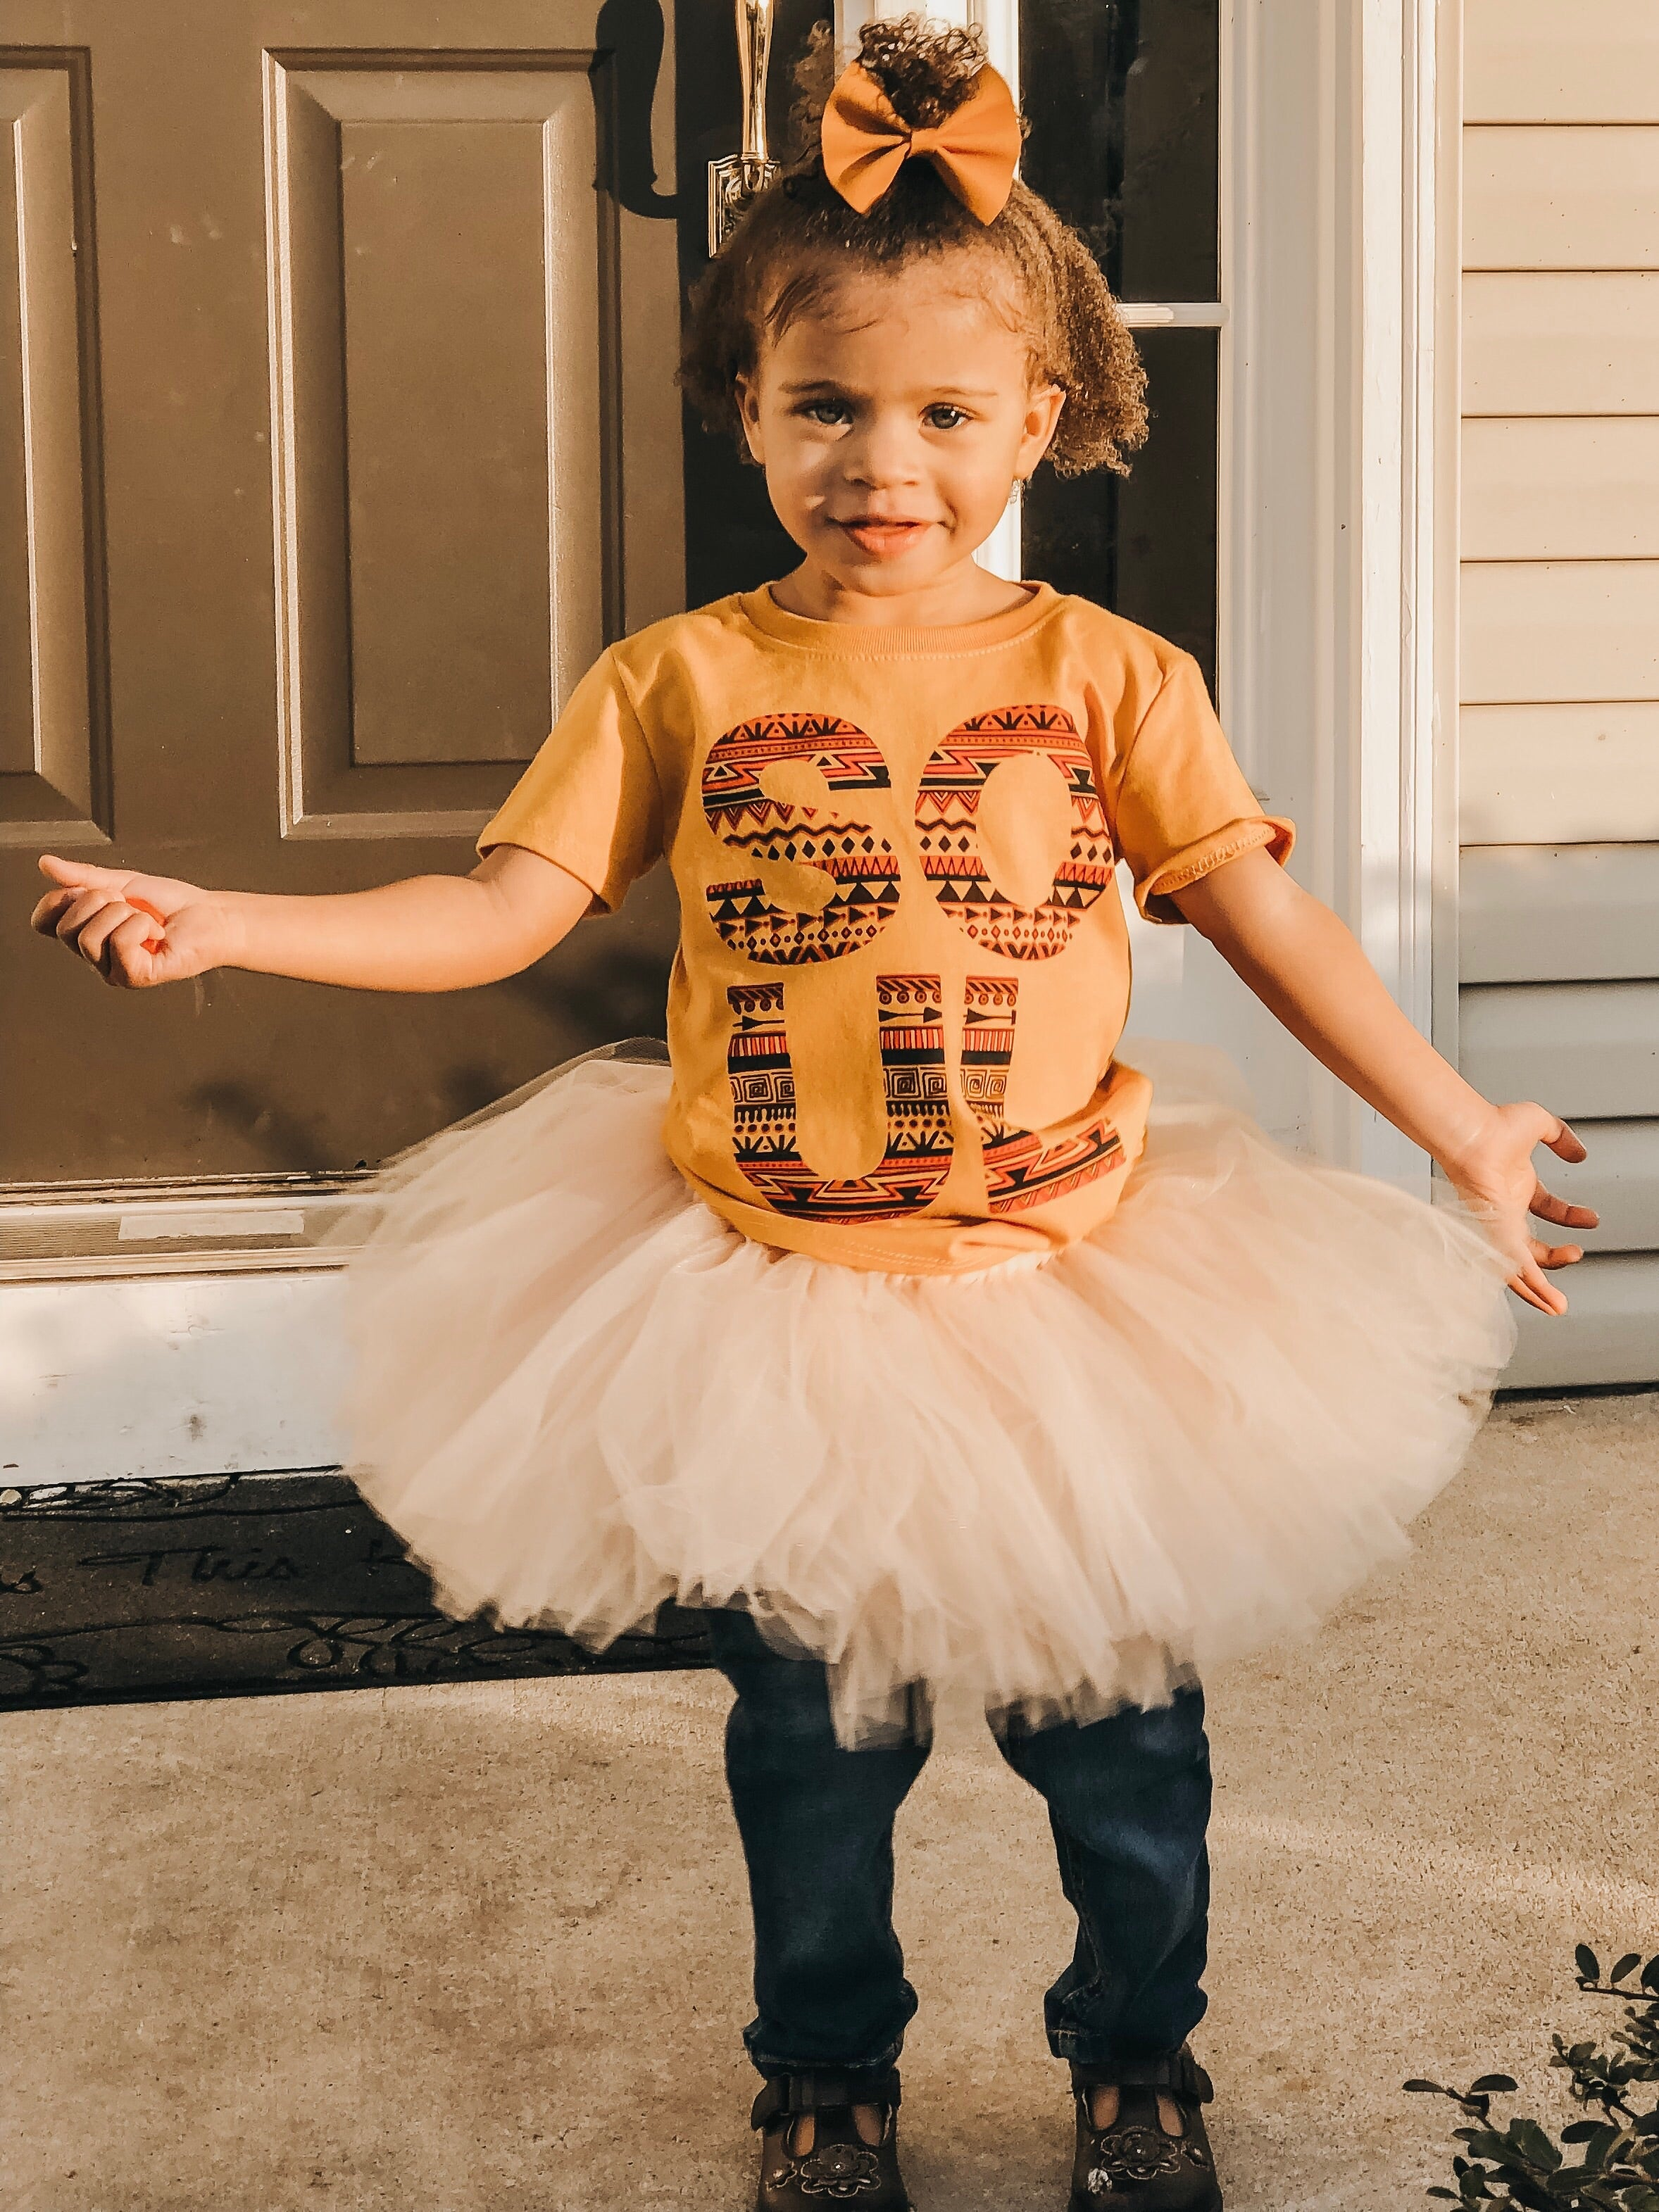 Khaki Sand Cream Color Tutu Skirt, 1st Birthday Tutu